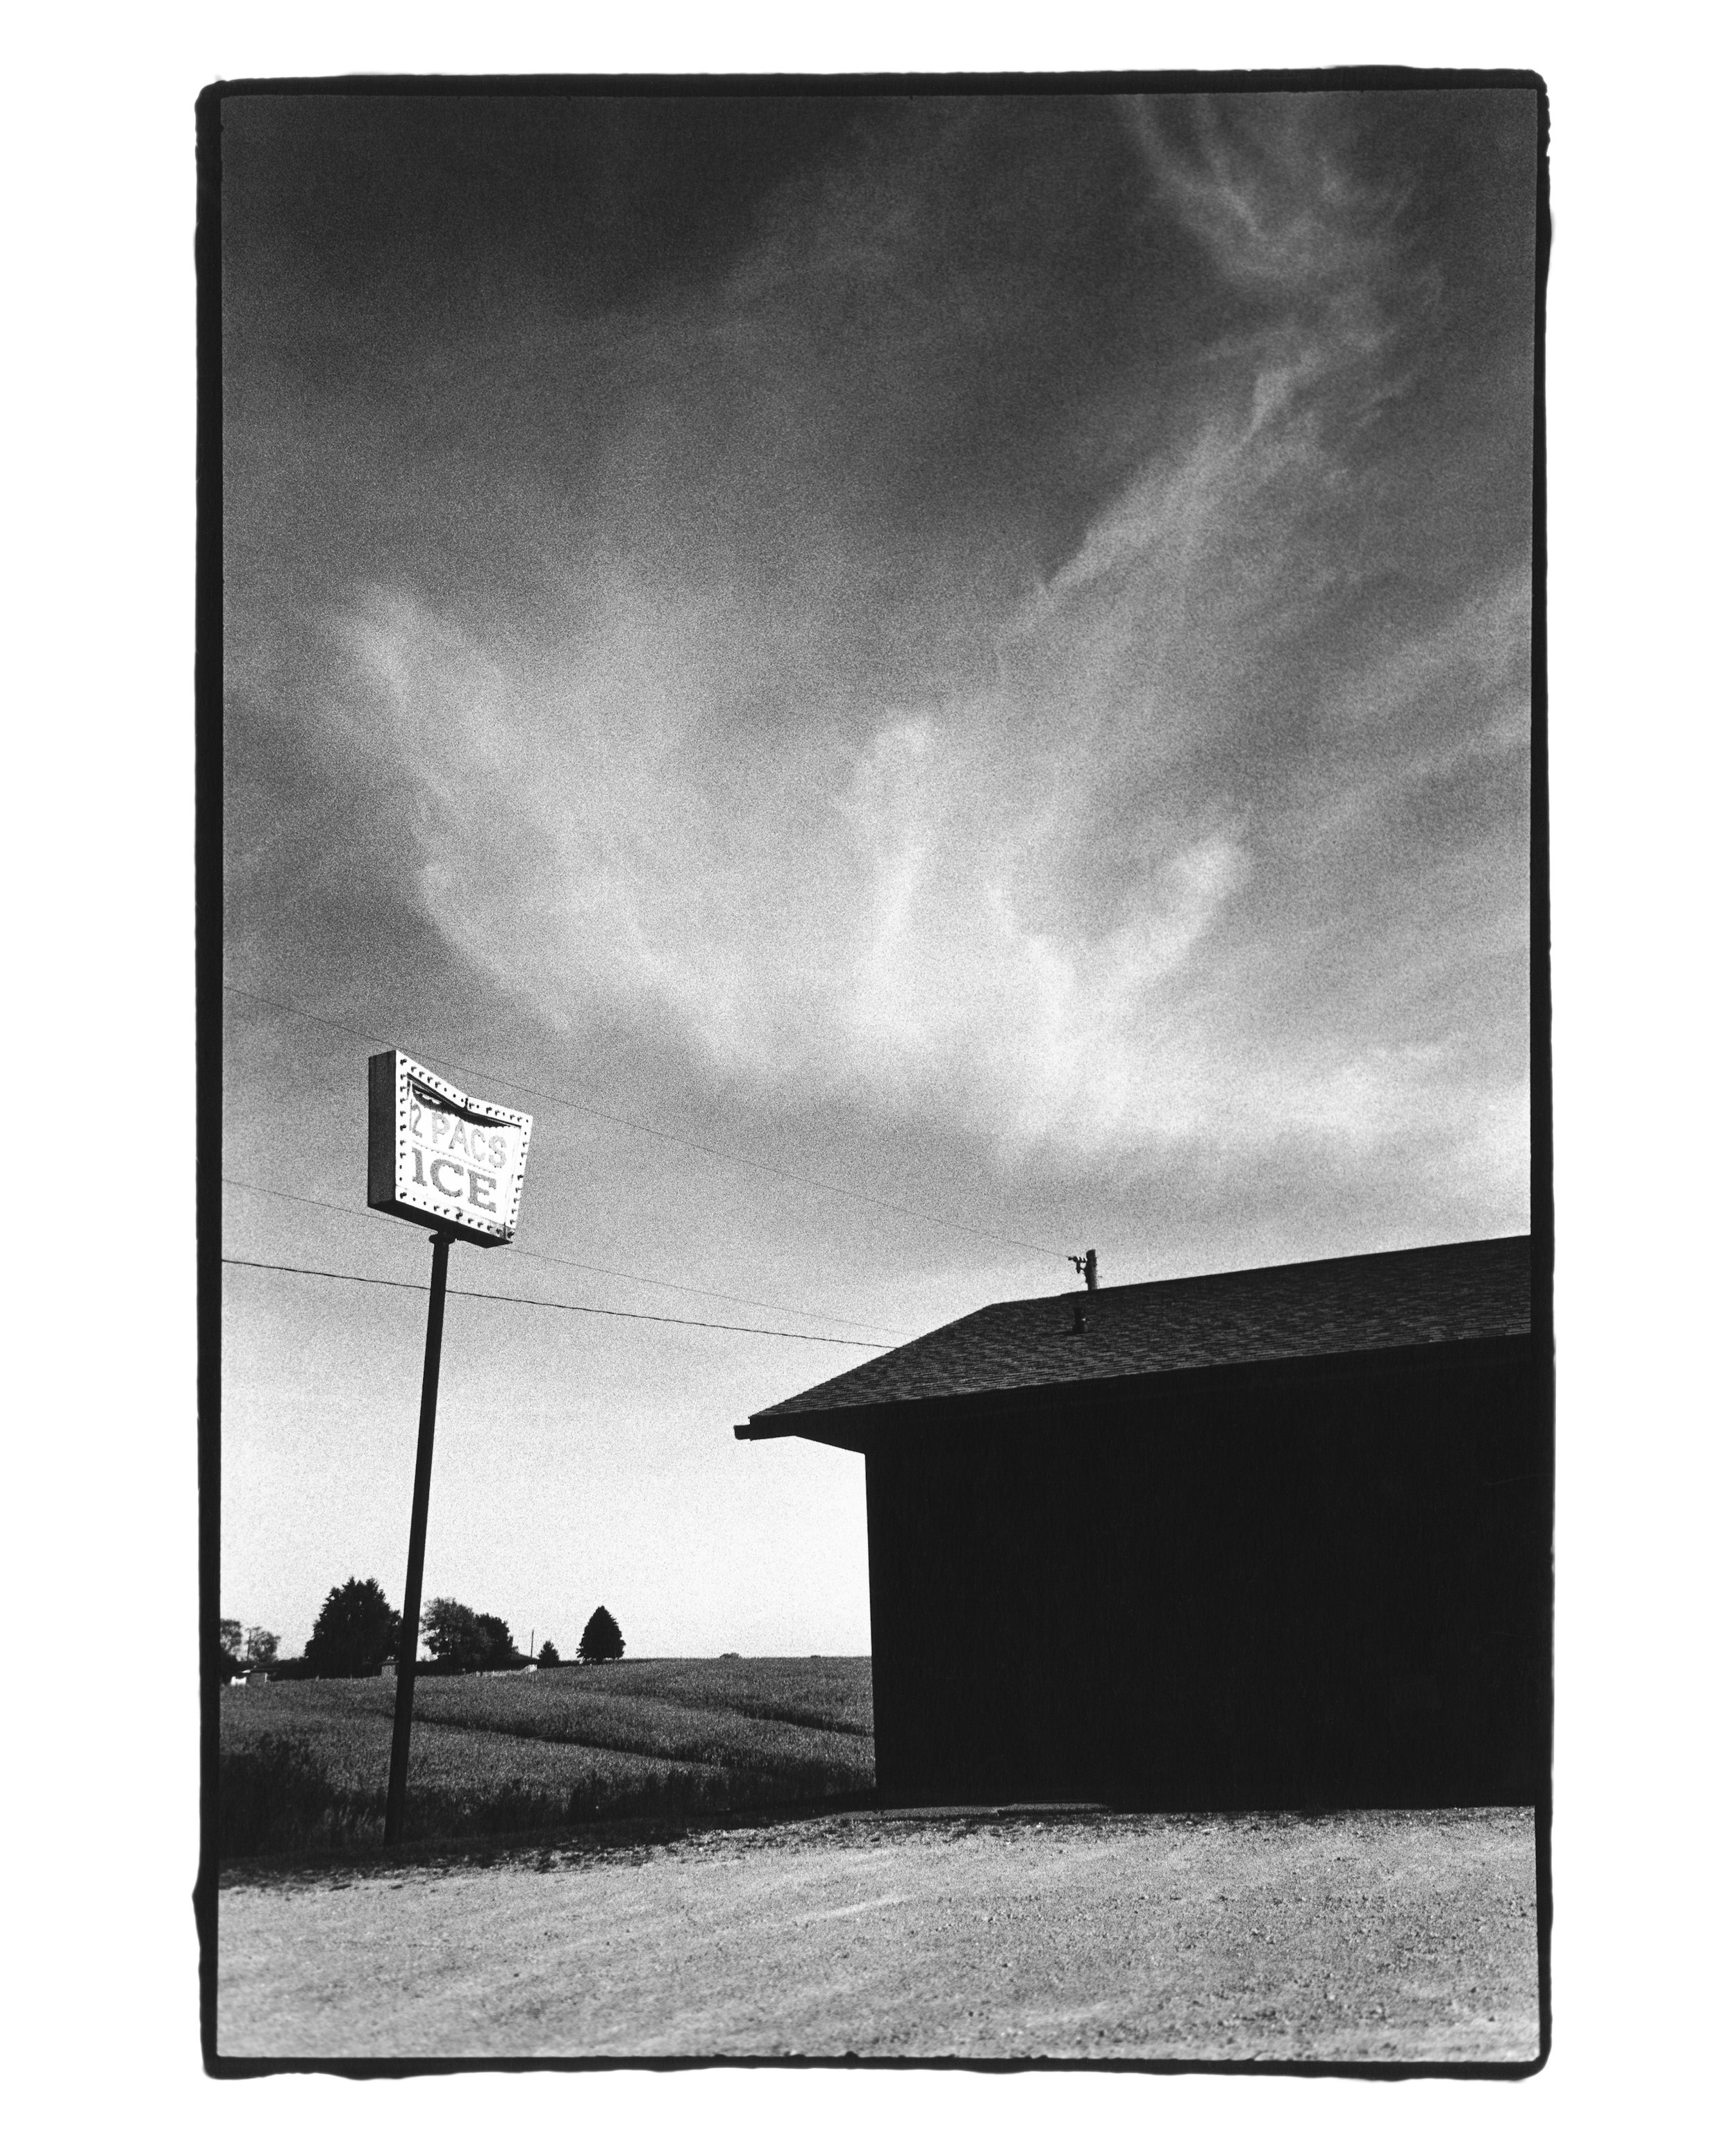 From  Highway 61  by Jessica Lange, published by powerHouse Books